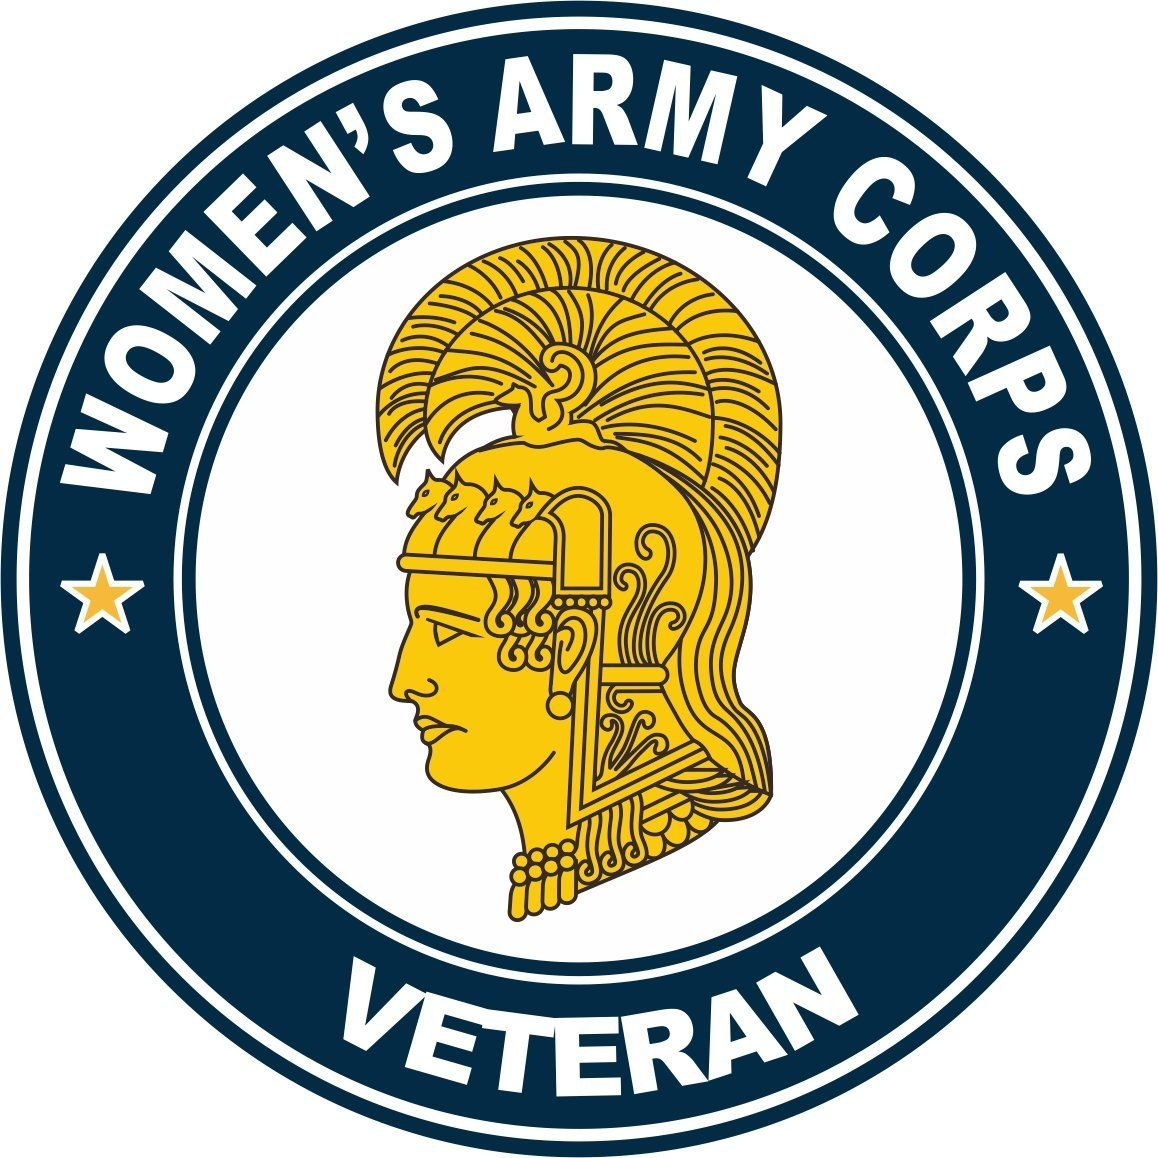 Women's Army Corps Women's army corps, Army corps, Army day